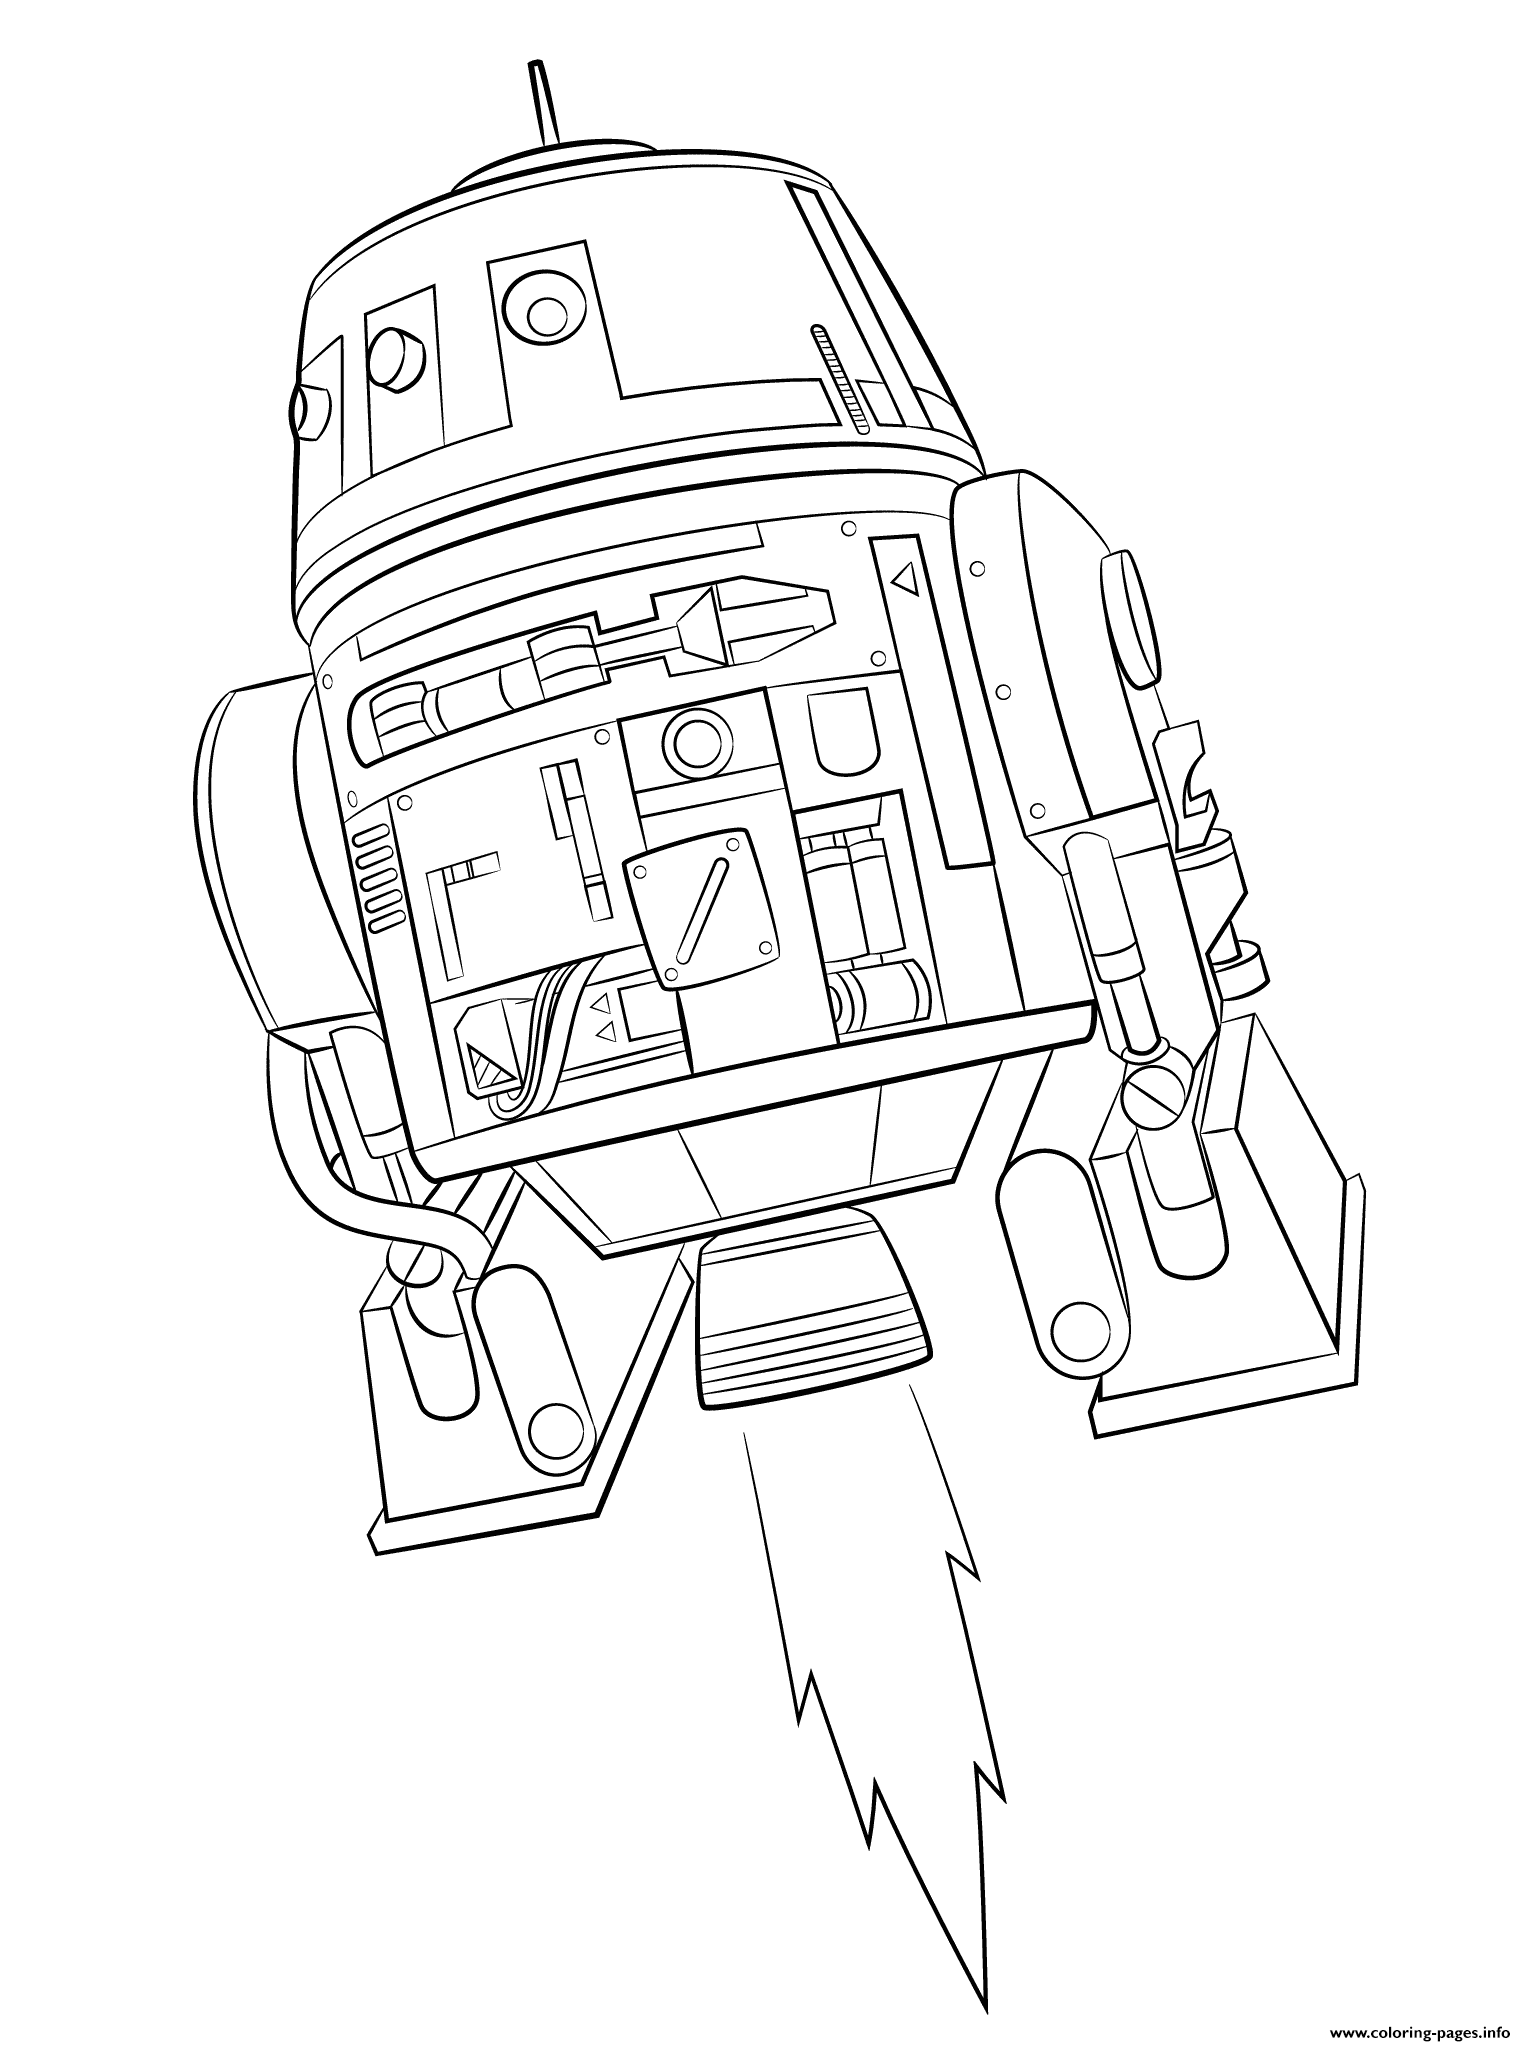 Star Wars Rebels Choppers coloring pages